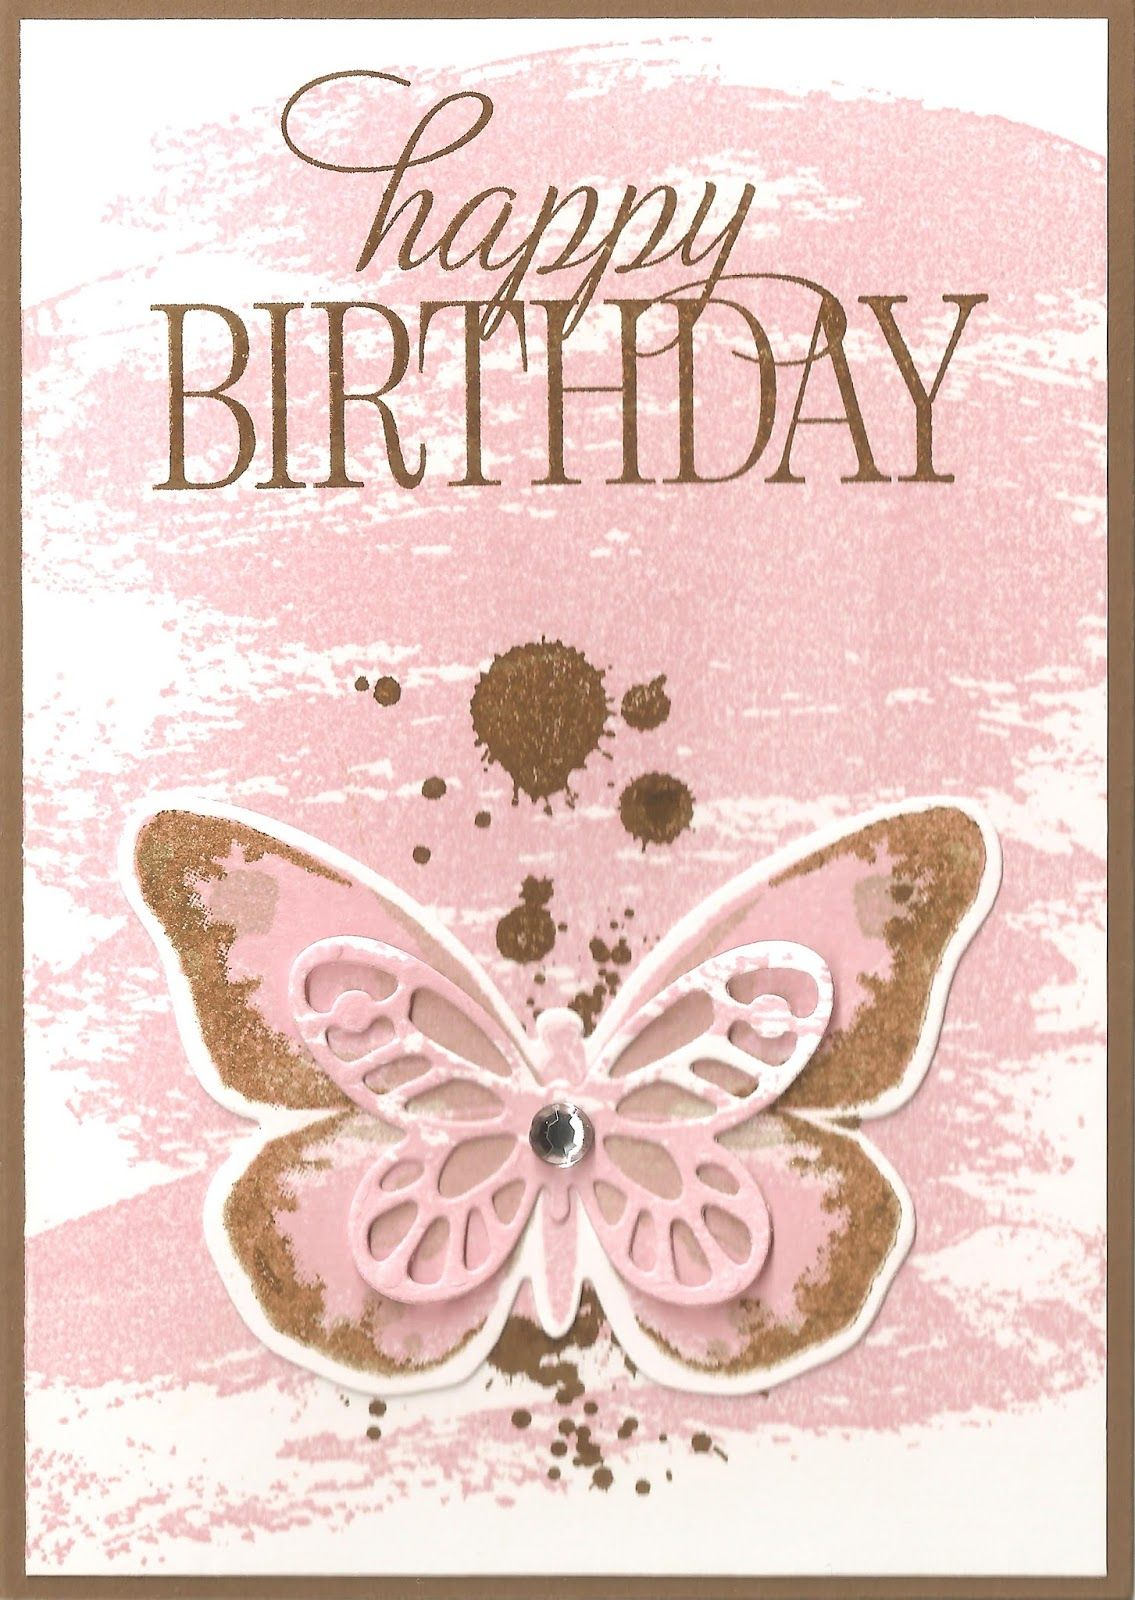 SU Watercolor Wings Stamp Set, Watercolor Wash BG Stamp, Happy Birthday, Everyone Stamp Set & Bold Butterfly Framelits